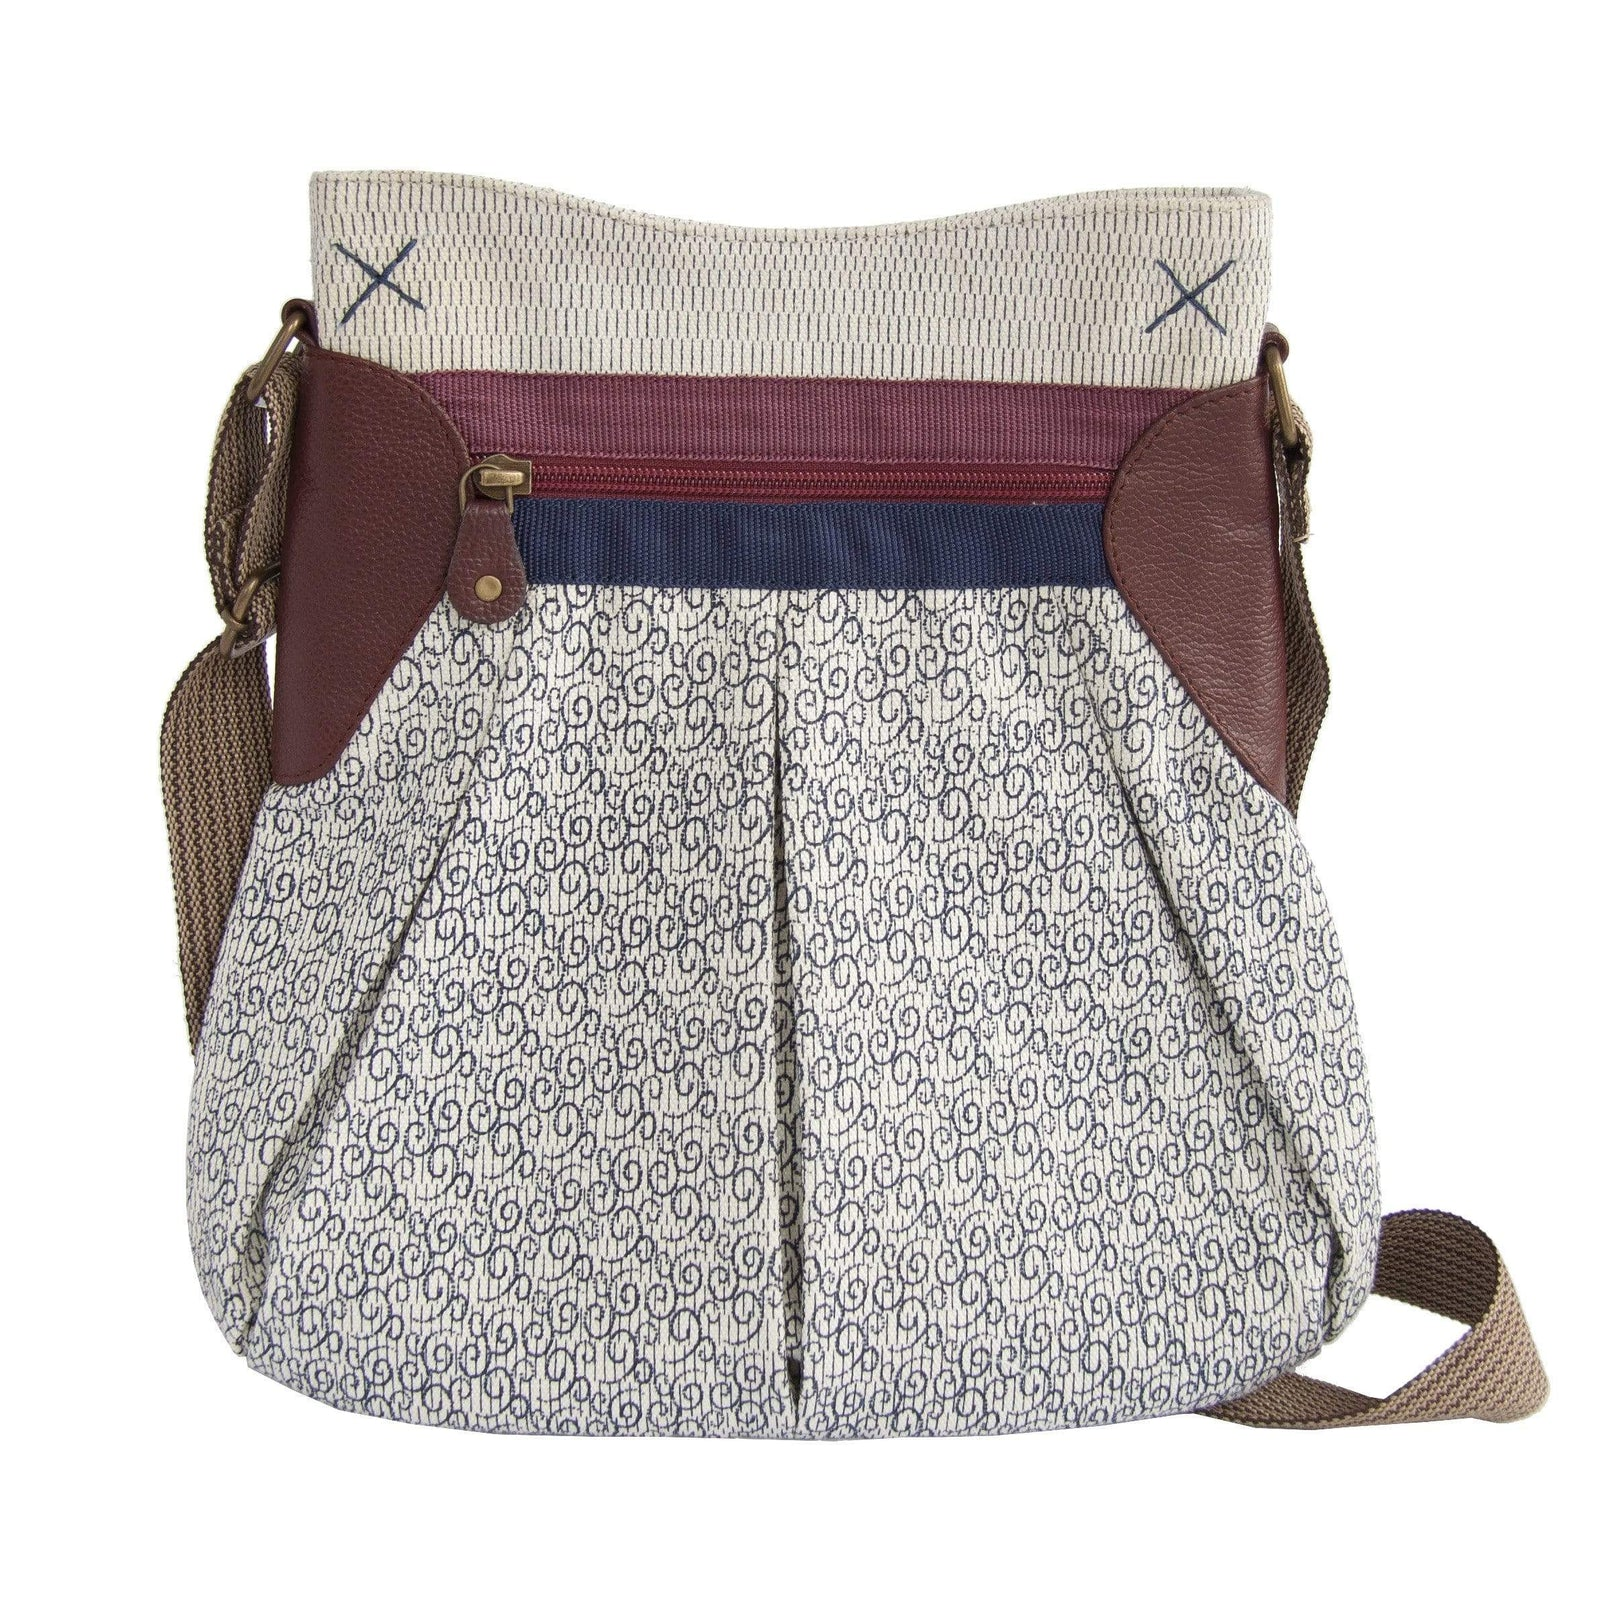 S.A.R.L Moira Purse Ziko Bag - Axel Skipper